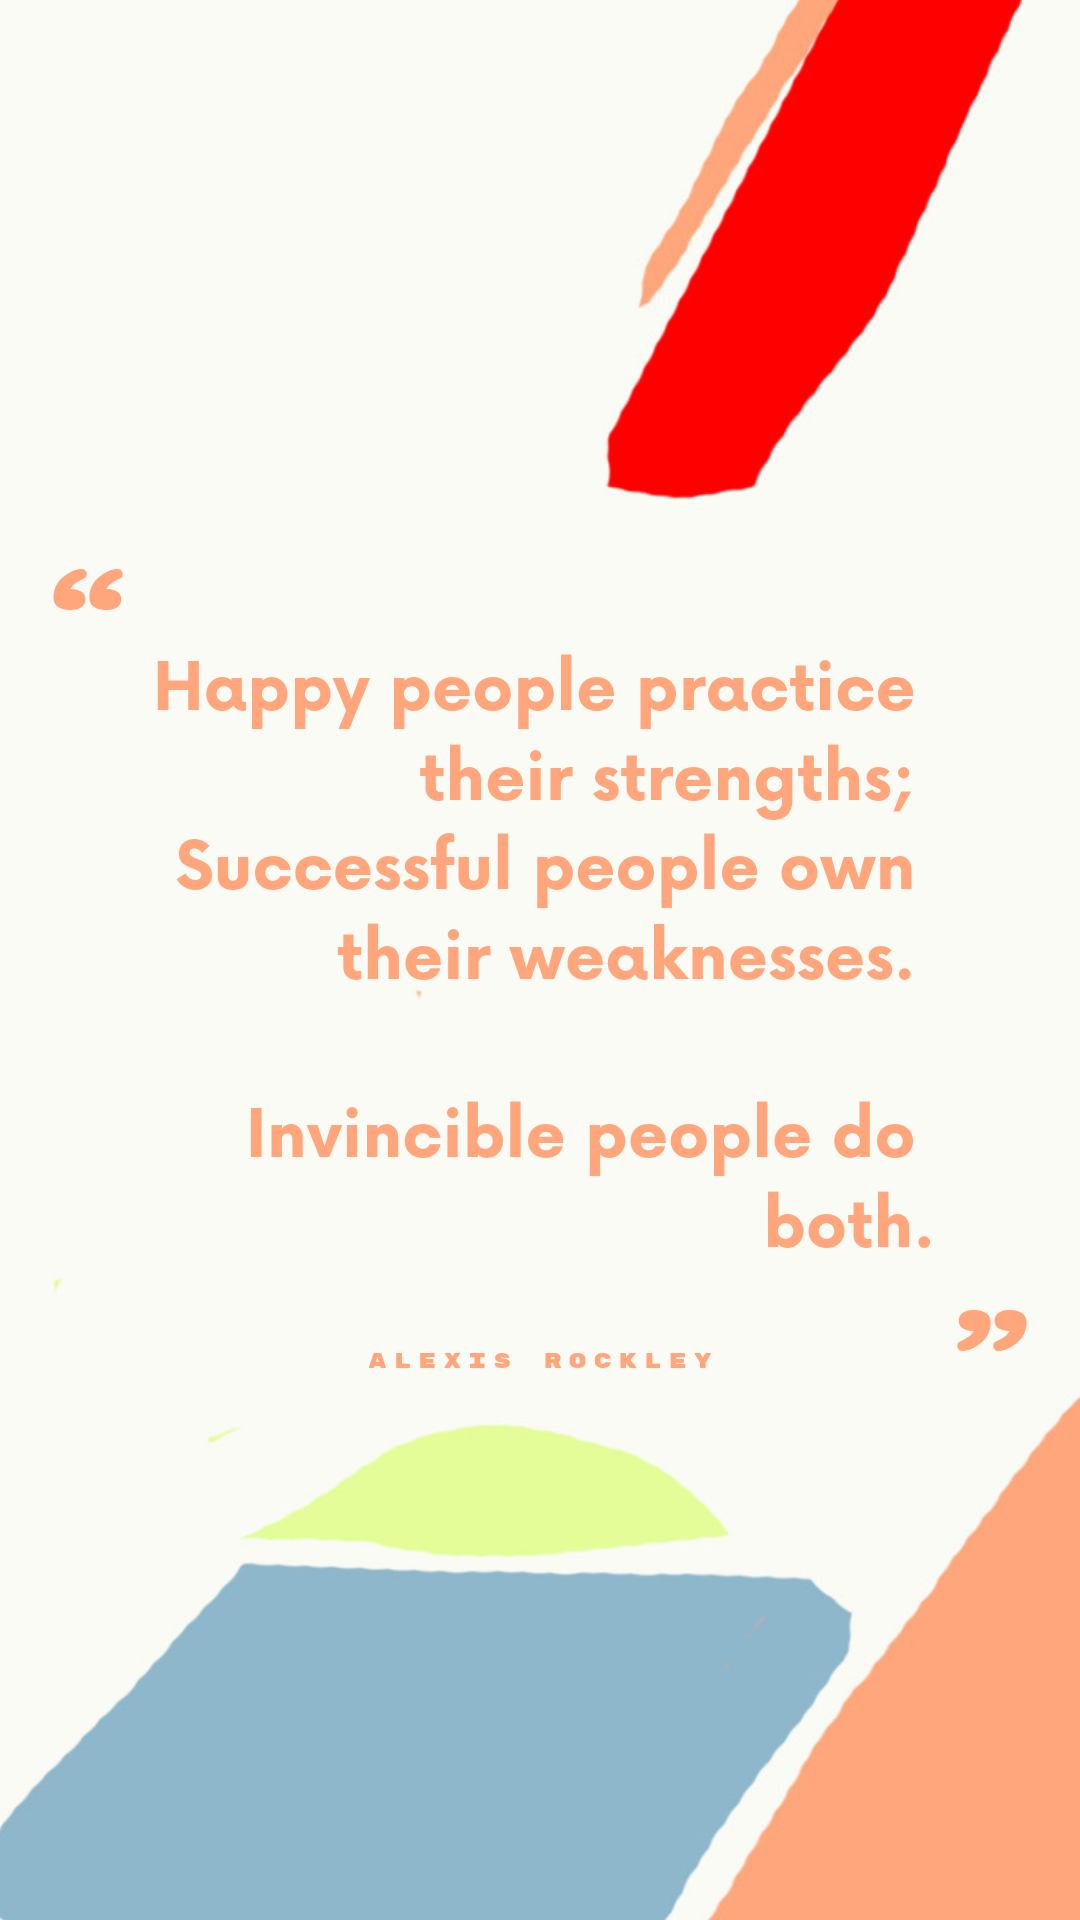 happy people practice their strengths; successful people own their weaknesses. invincible people do both. (1).png